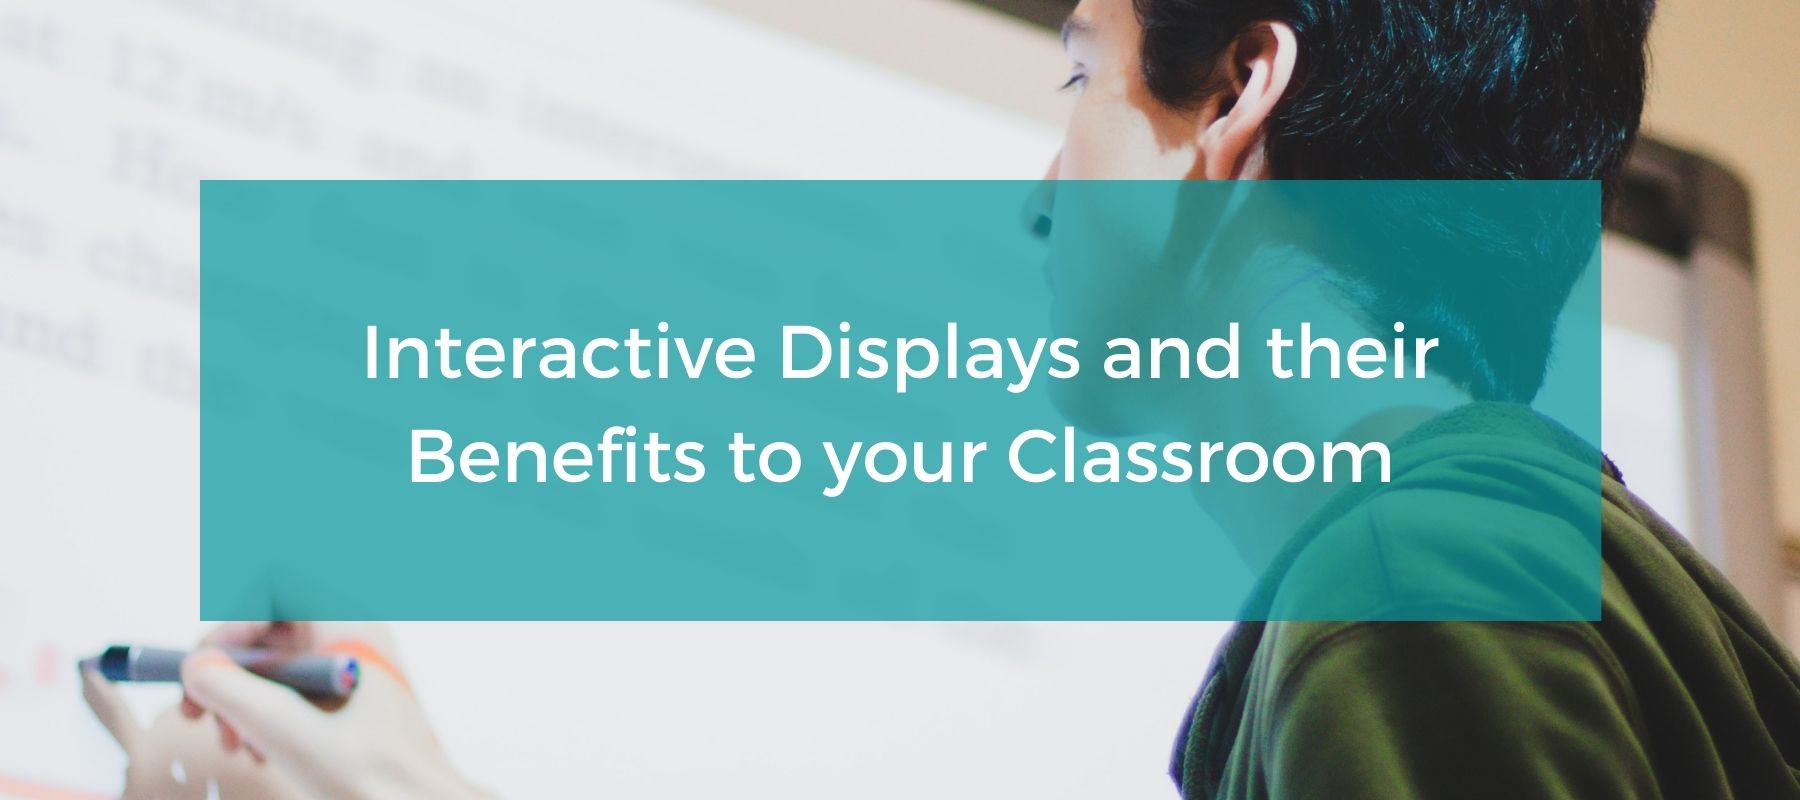 Interactive Displays and their Benefits to your Classroom featured image.